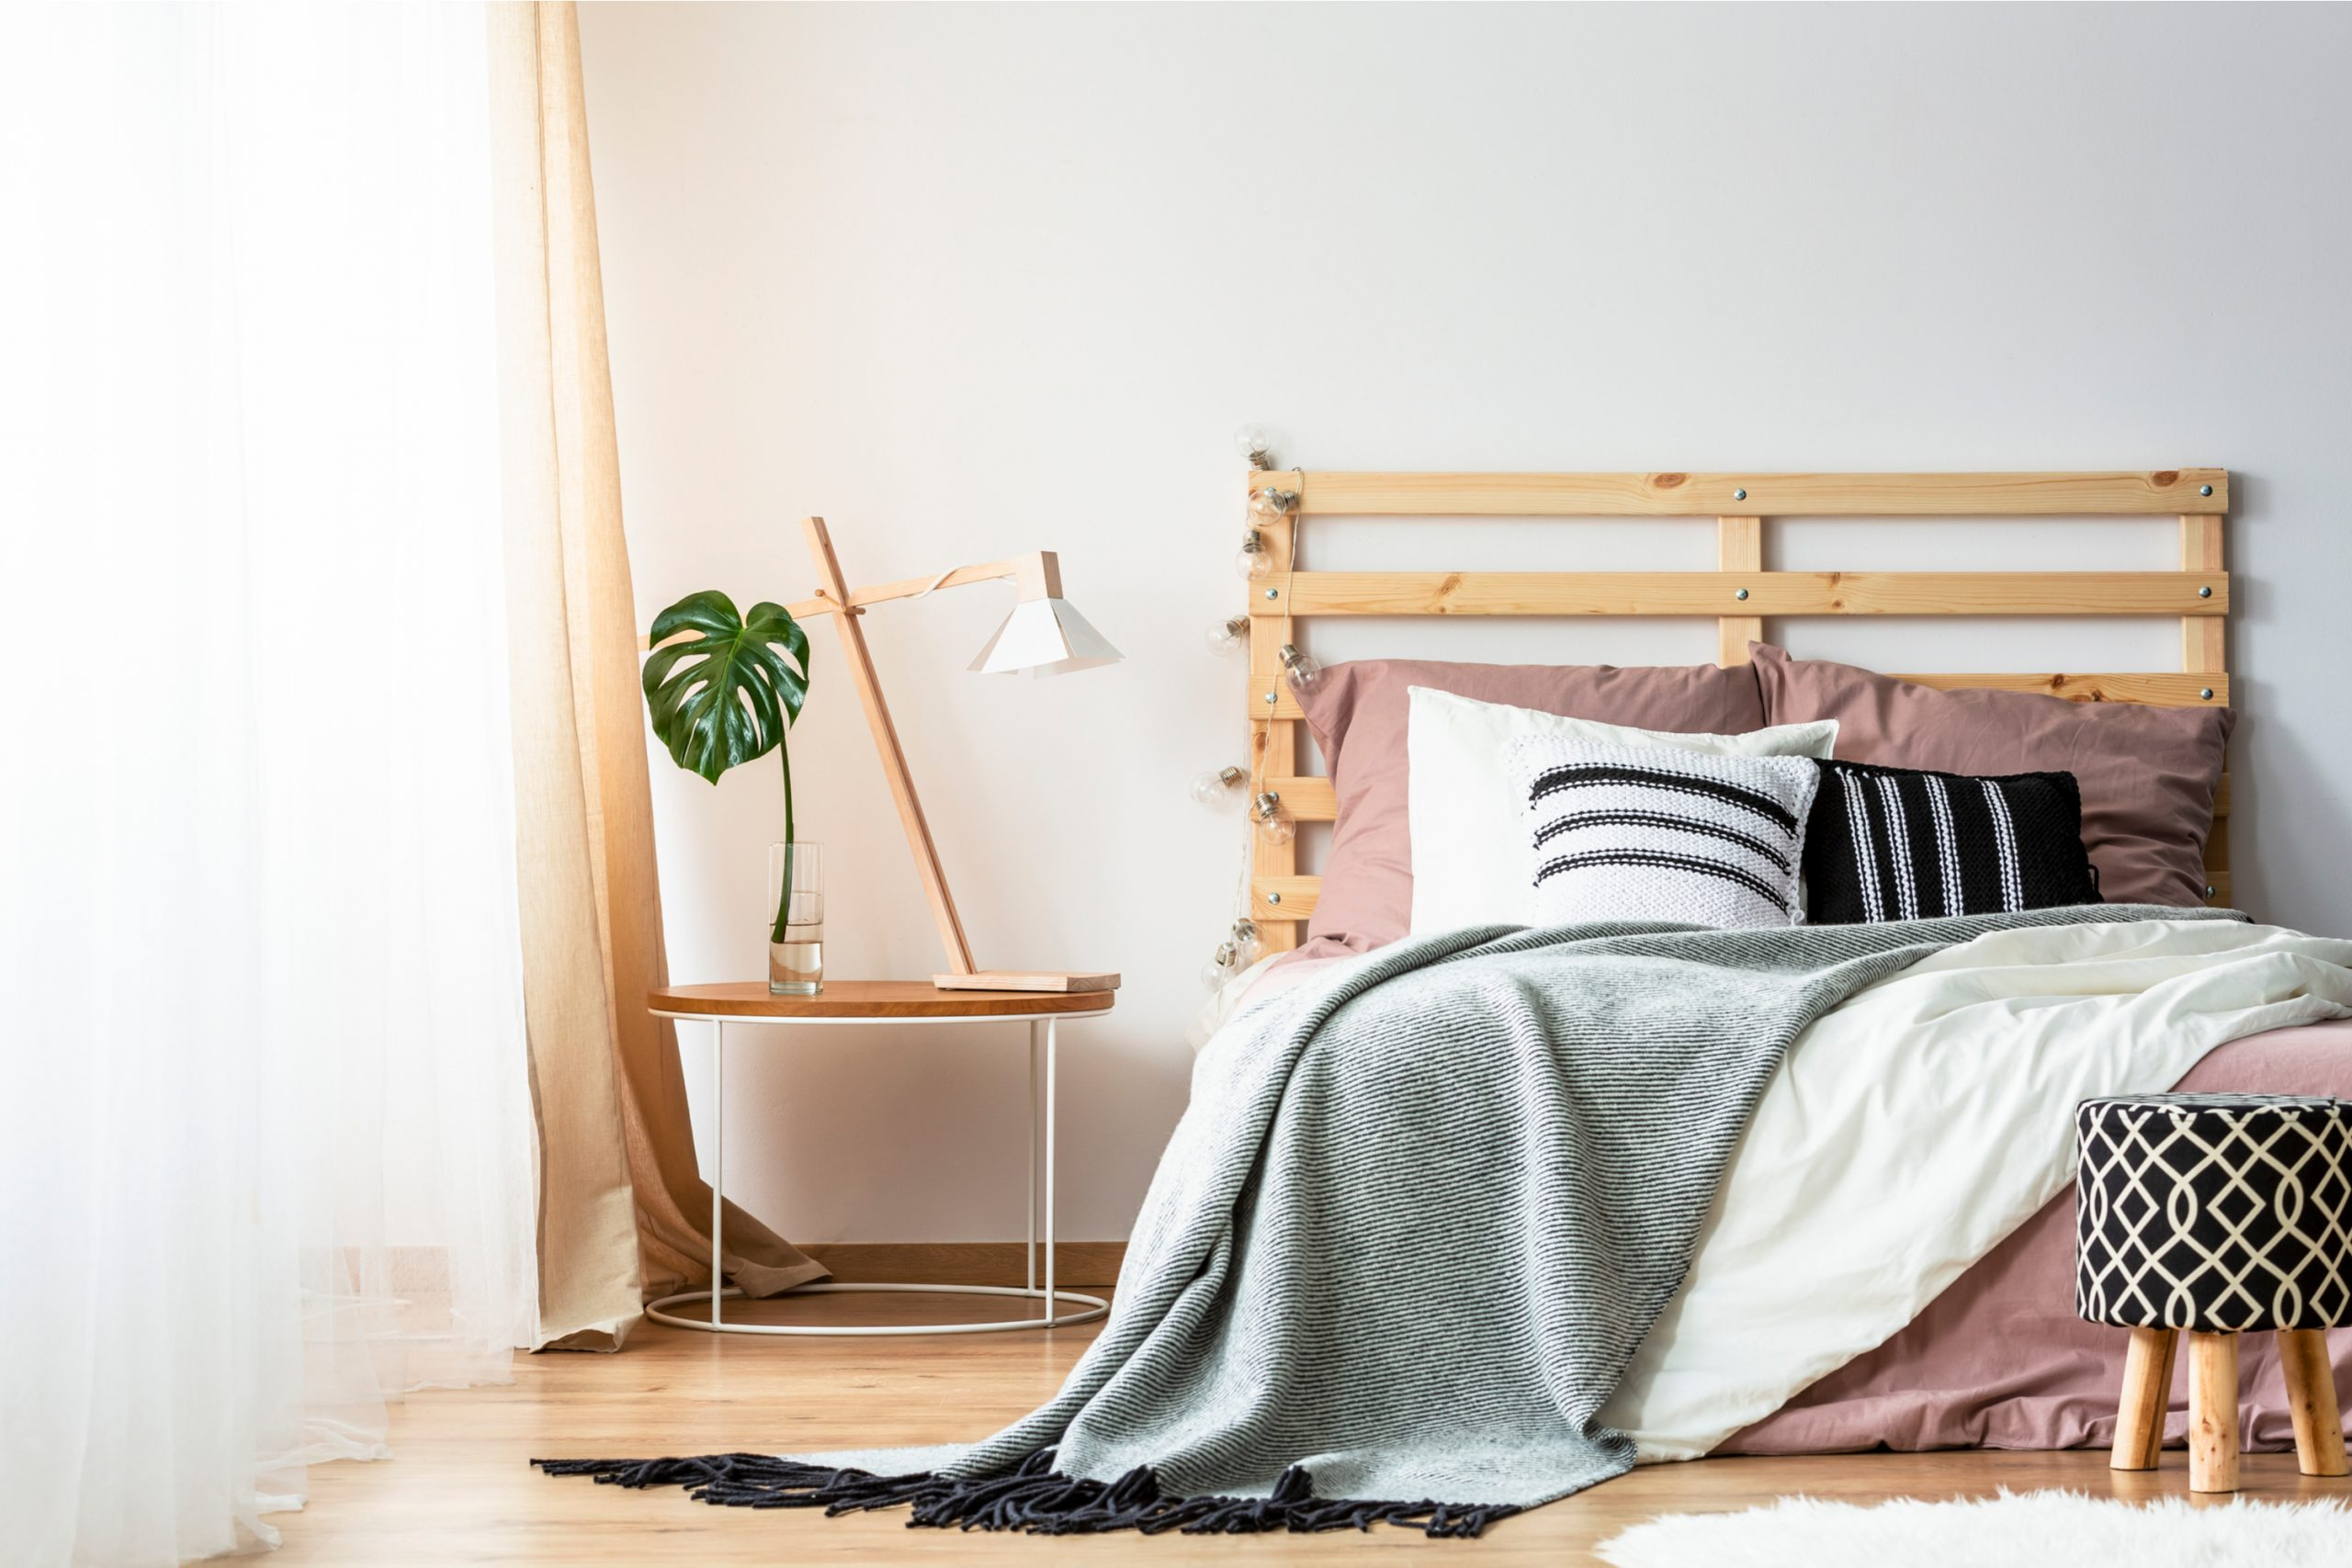 Calling all DIY lovers!!! These DIY headboard ideas will certainly get you excited about changing up your room. We even have ideas for a DIY headboard with lights.